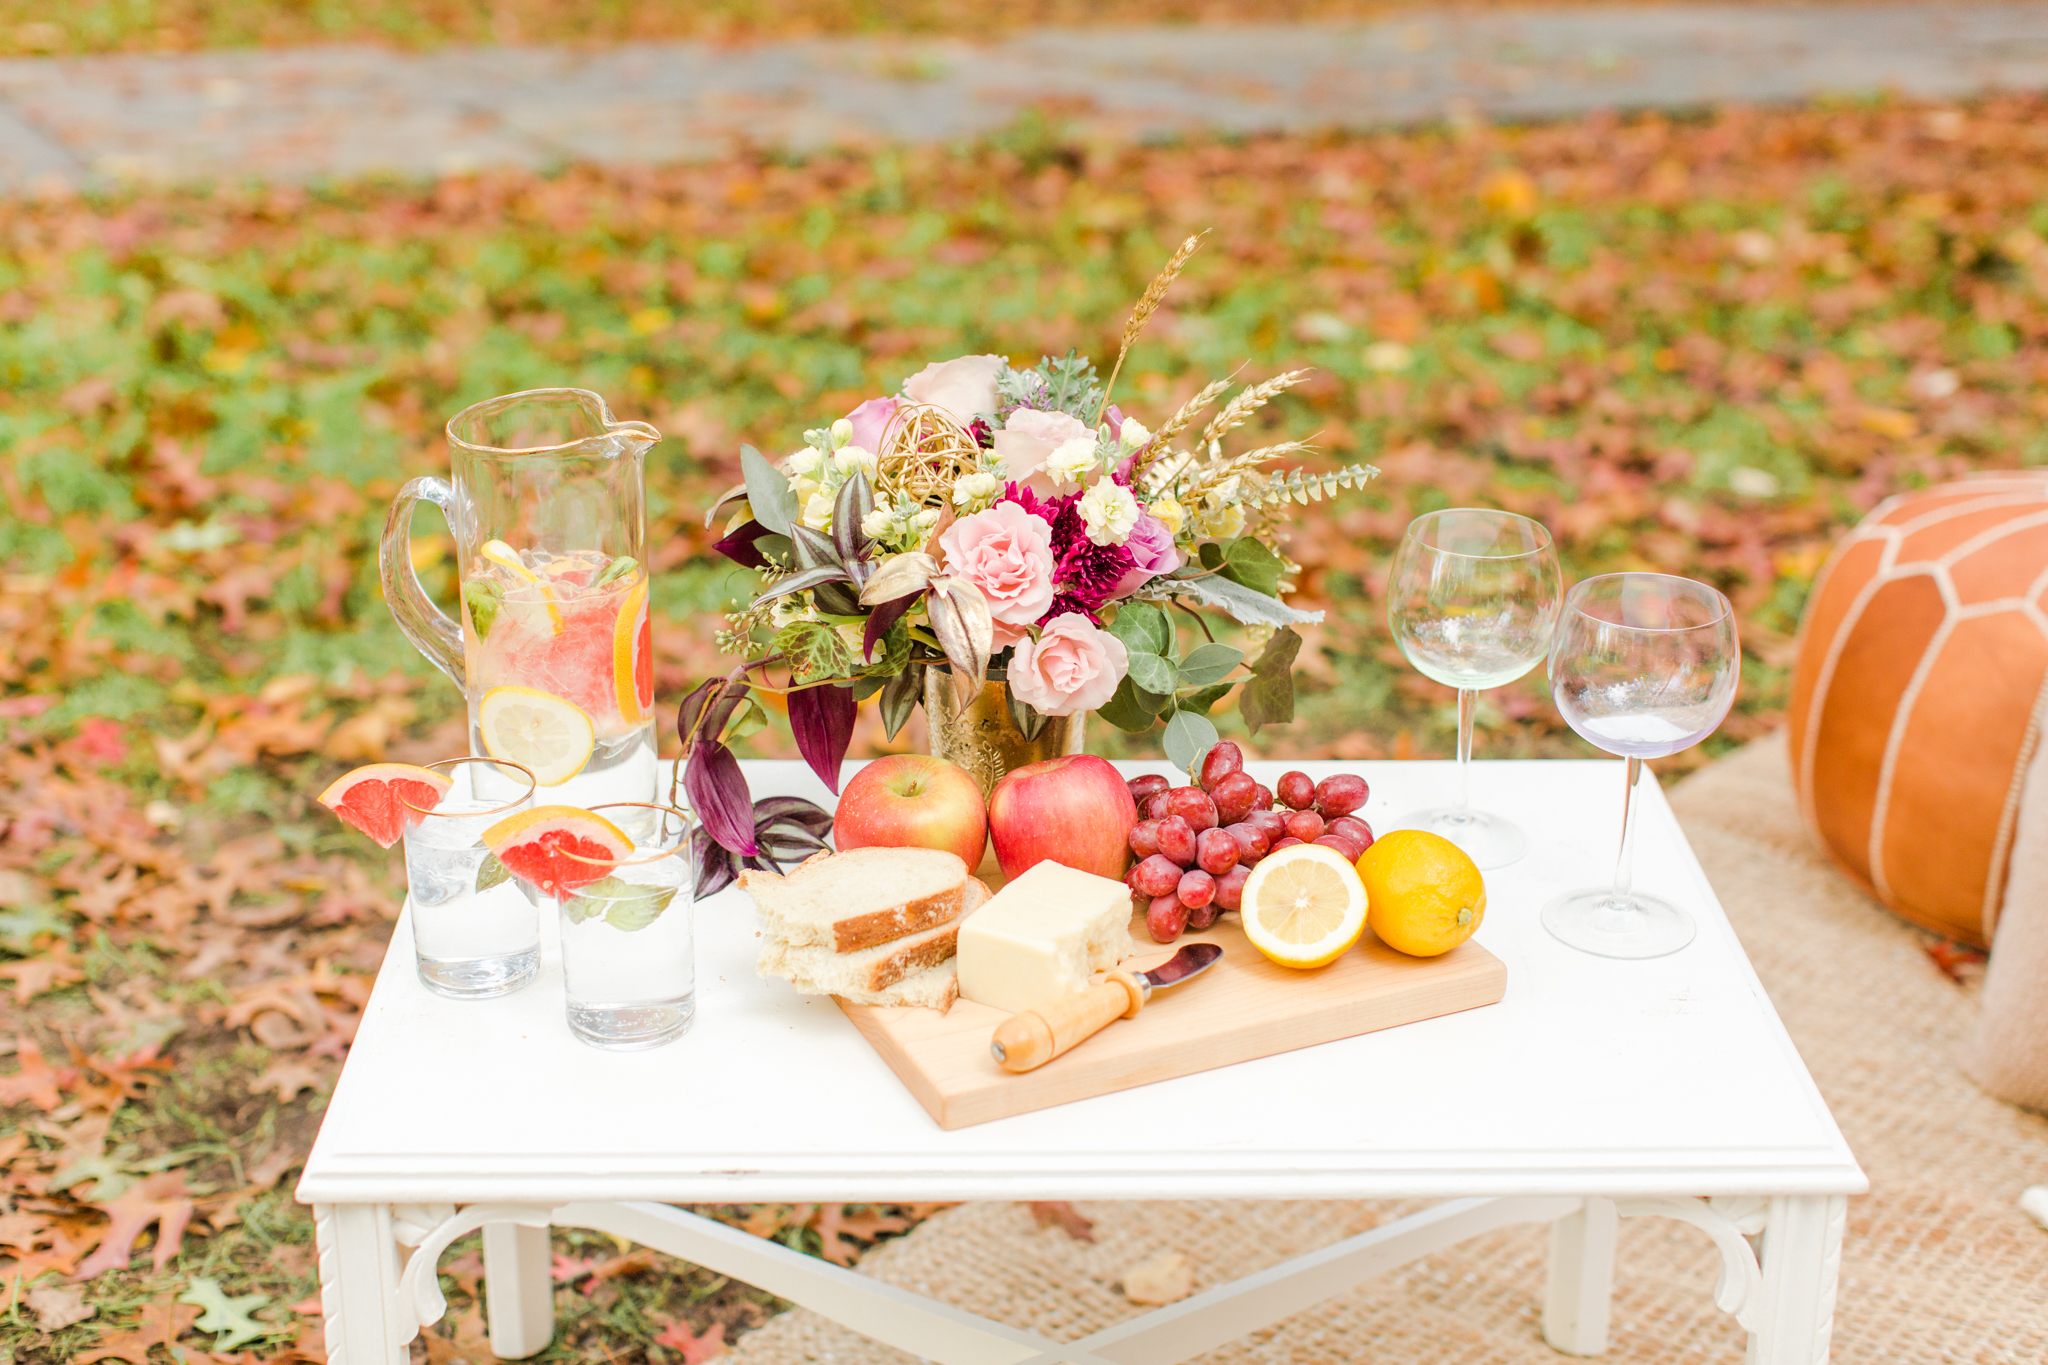 Wedding elopement appetizer spread with cheese, bread, grapes and apples. Grapefruit, mint and gin wedding cocktail! Pearl Weddings & Events